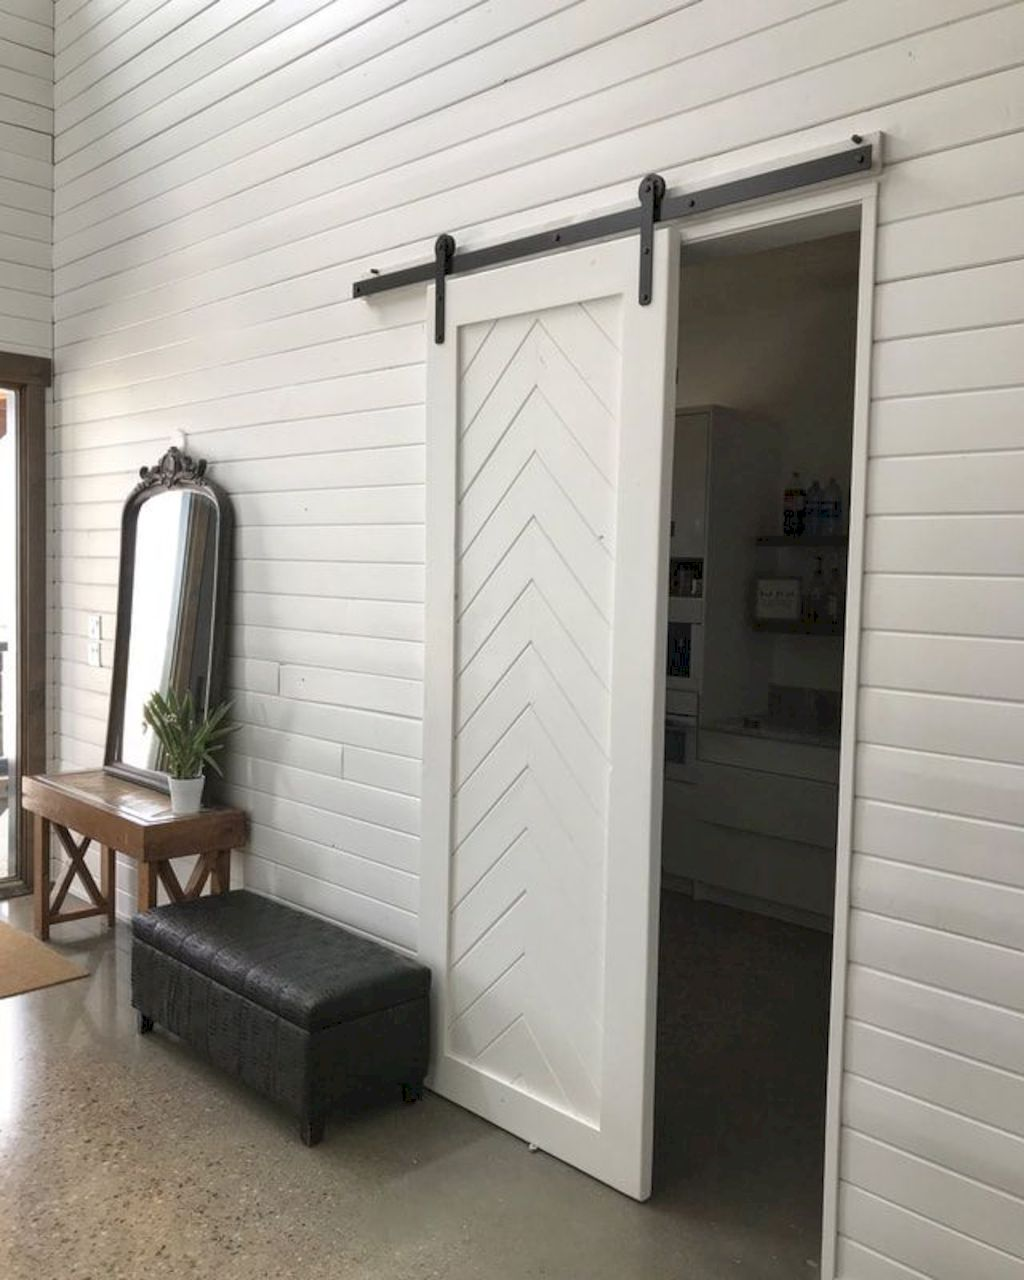 Barn style sliding doors designed to upgrade a rustic look in your farmhouse and rustic home style Image 25